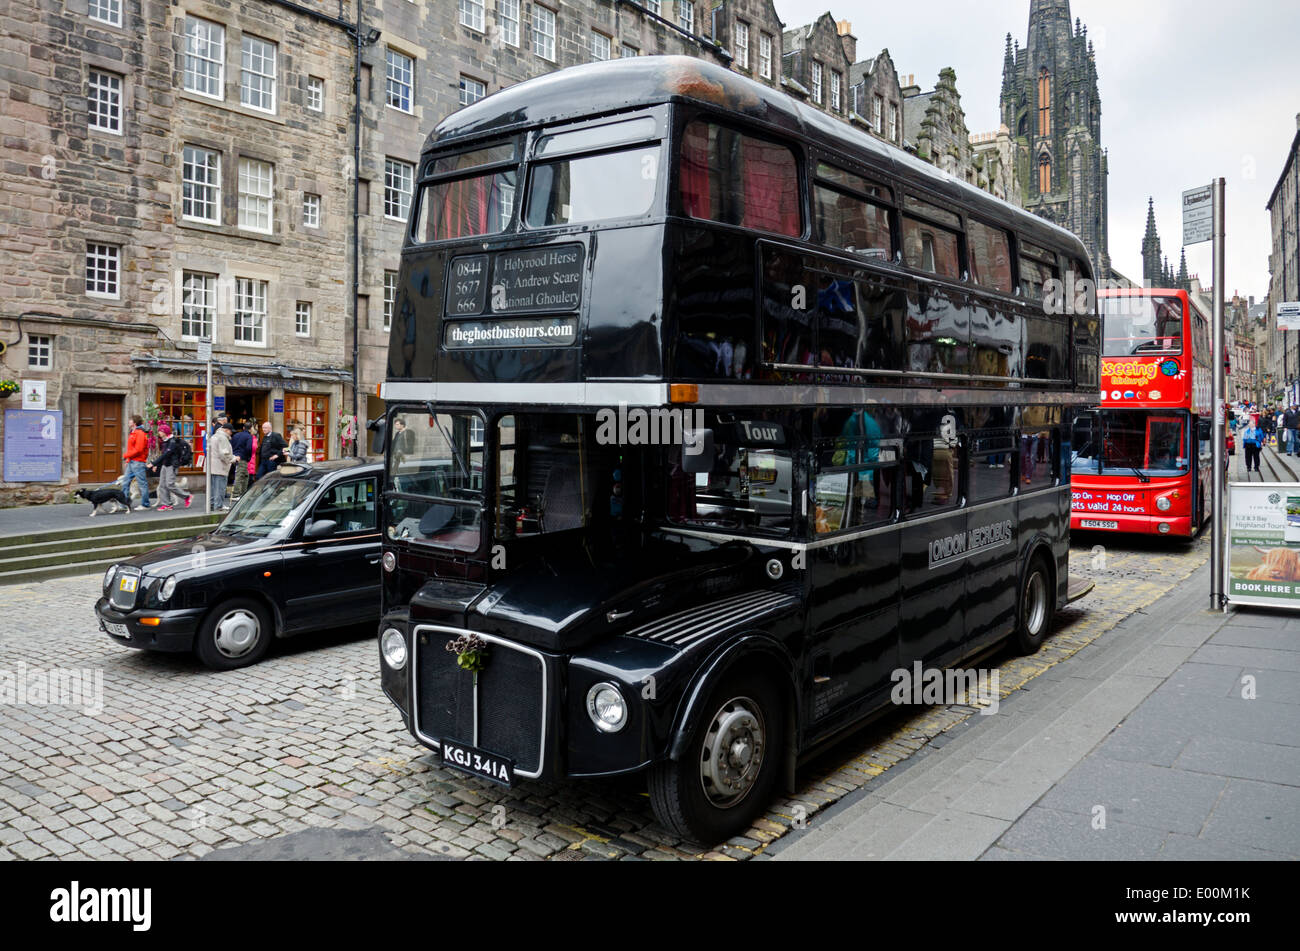 The Edinburgh Ghost Bus Tour is a theatrical sightseeing tour, taking you on a journey around the darker side of Edinburgh. - Stock Image